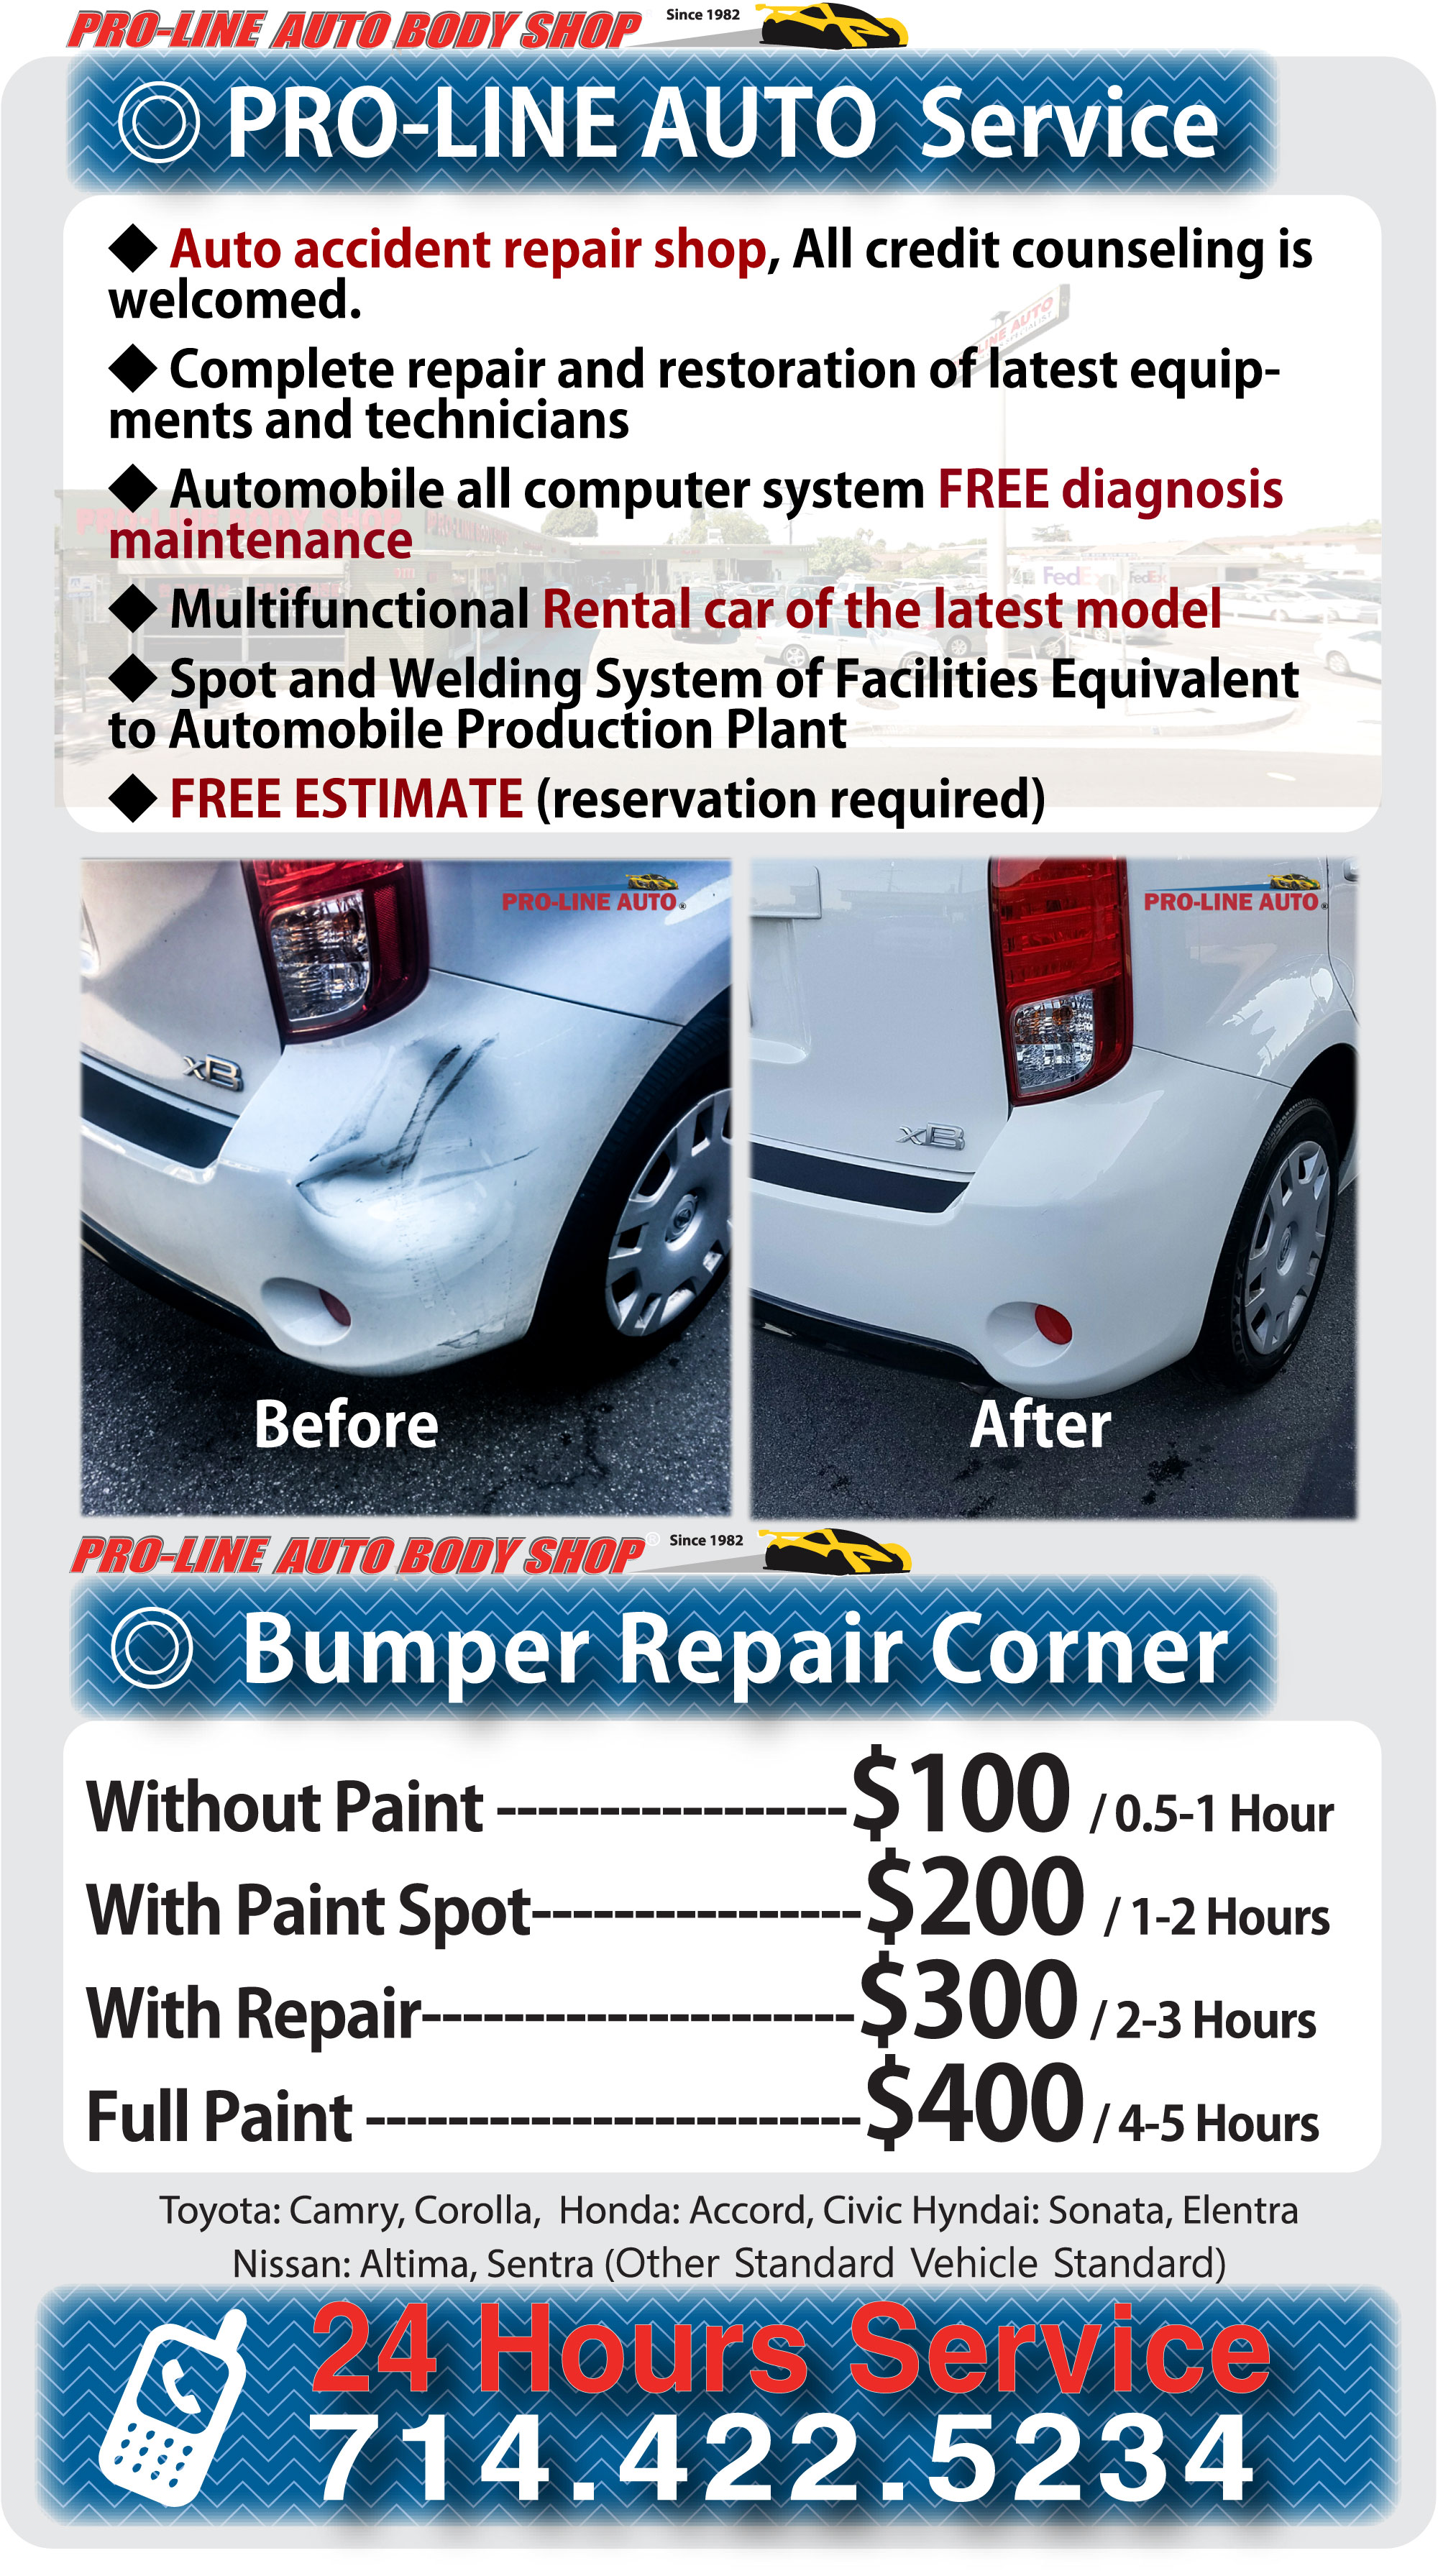 Prolinebodyshop Com Orange County Body Shop Pro Low Price Computerized Painting Pro Line Service Services We Specialize In Lifetime Warranty Repairs Better Than Pre Loss Condition We Work With All Insurance